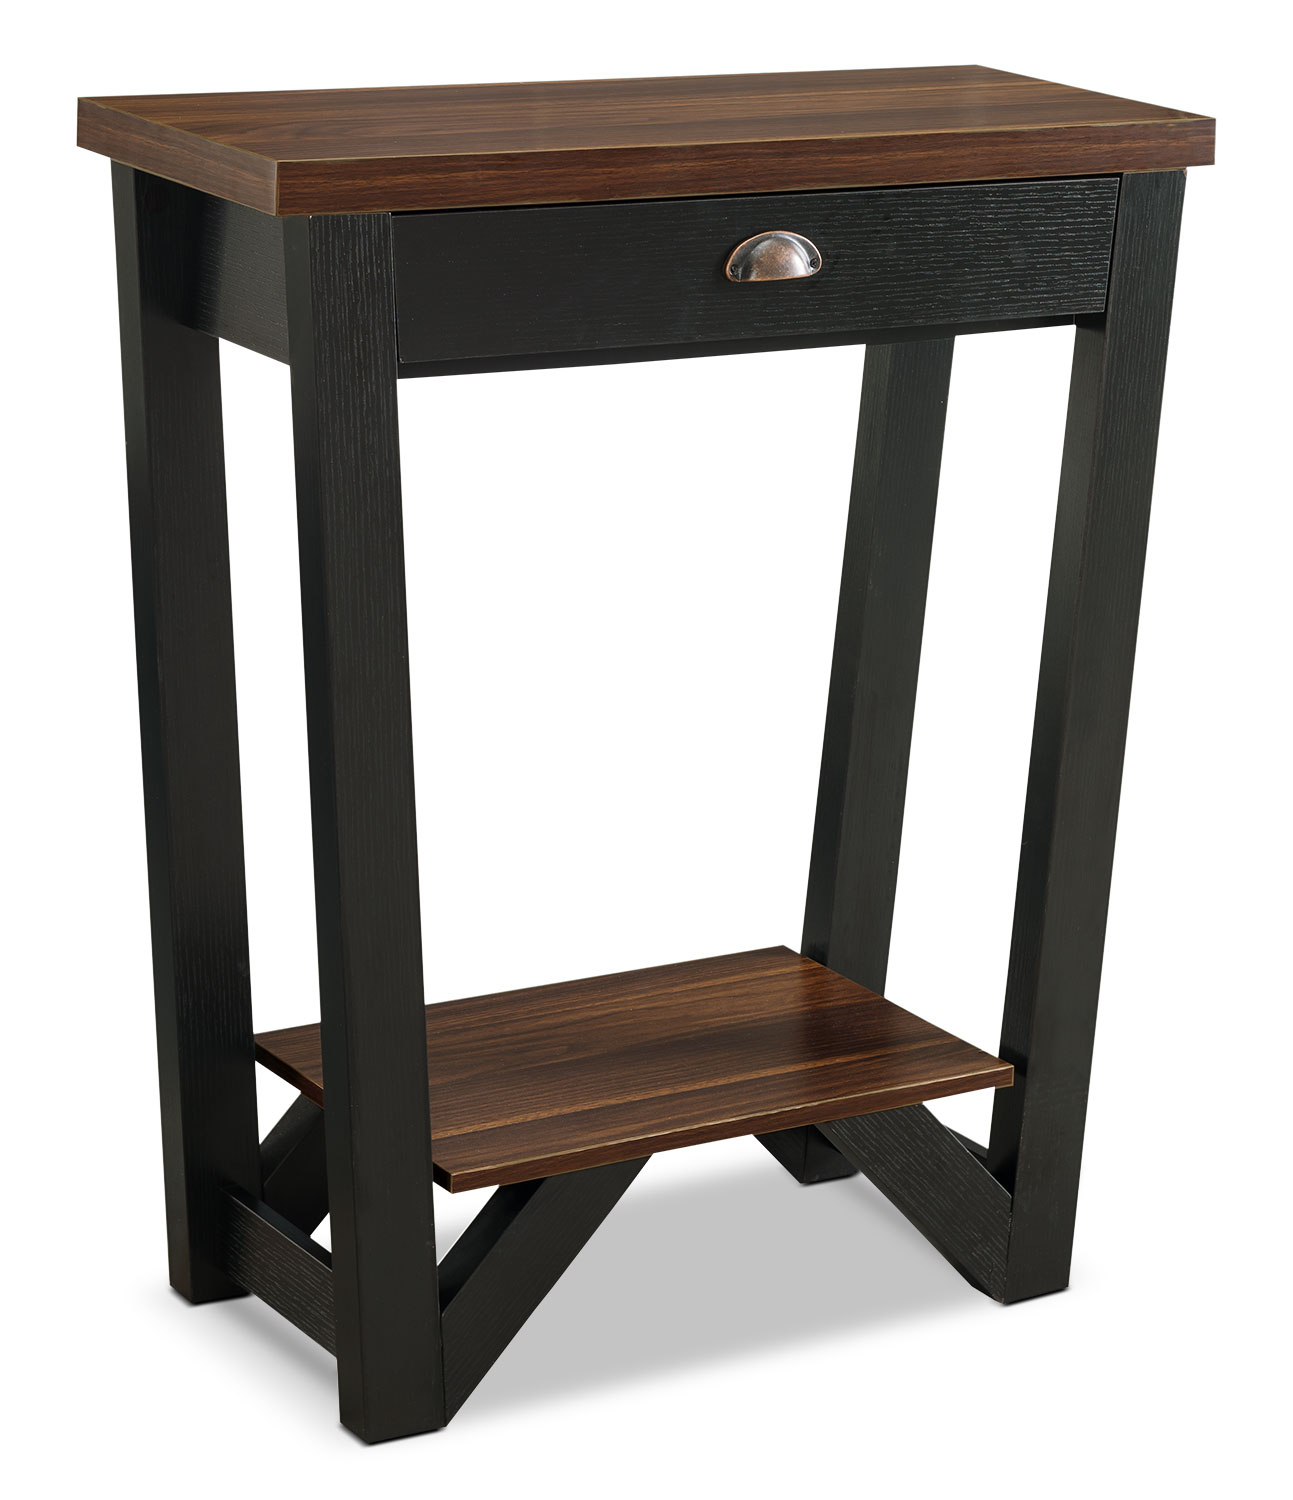 Arika Console Table – Black